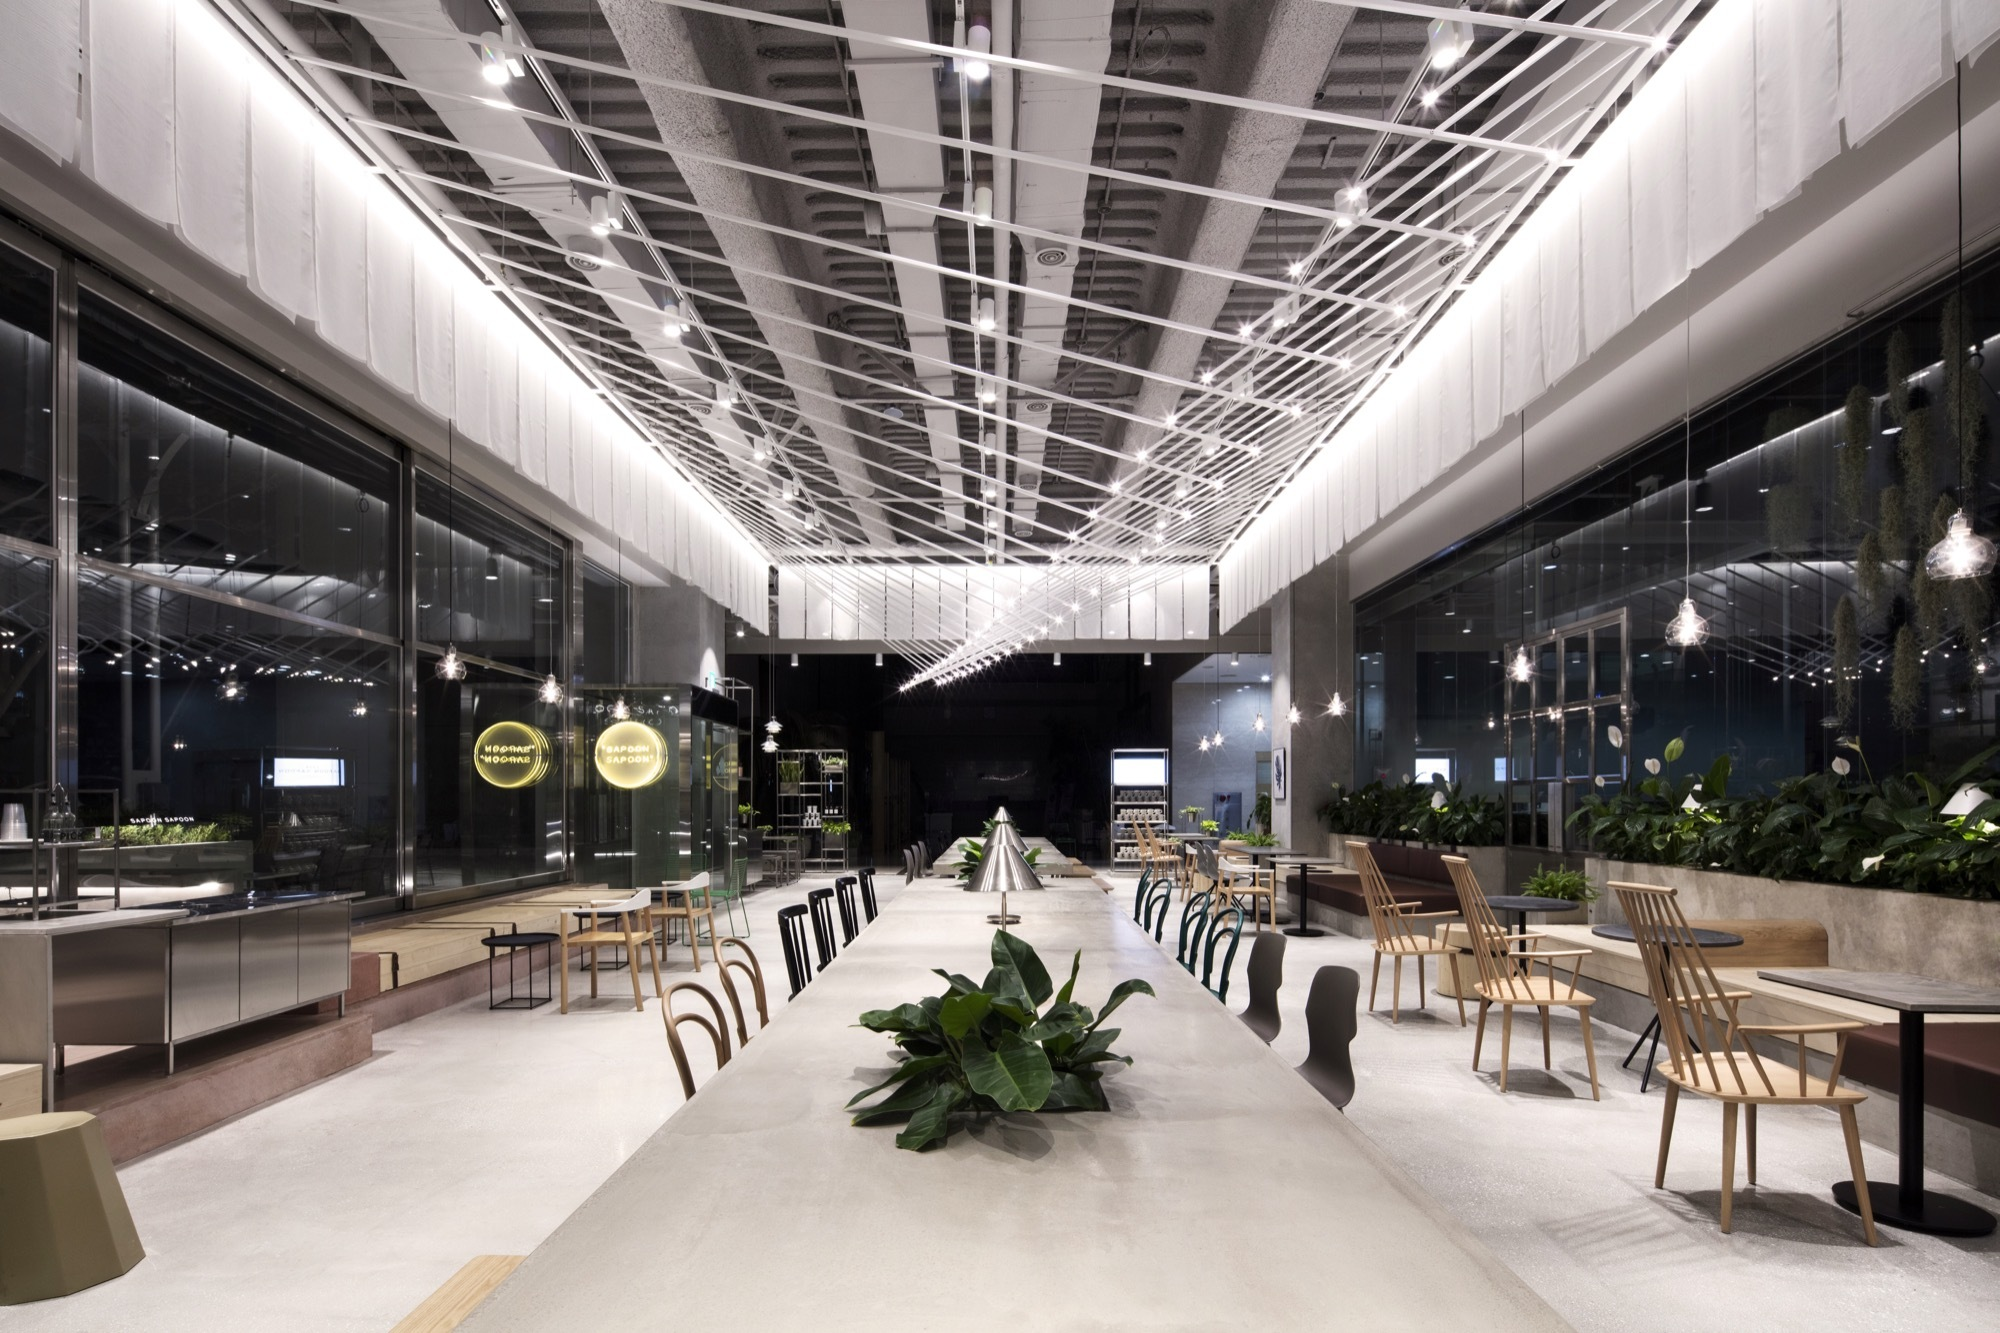 Gallery Space Design Gallery of SAPO...